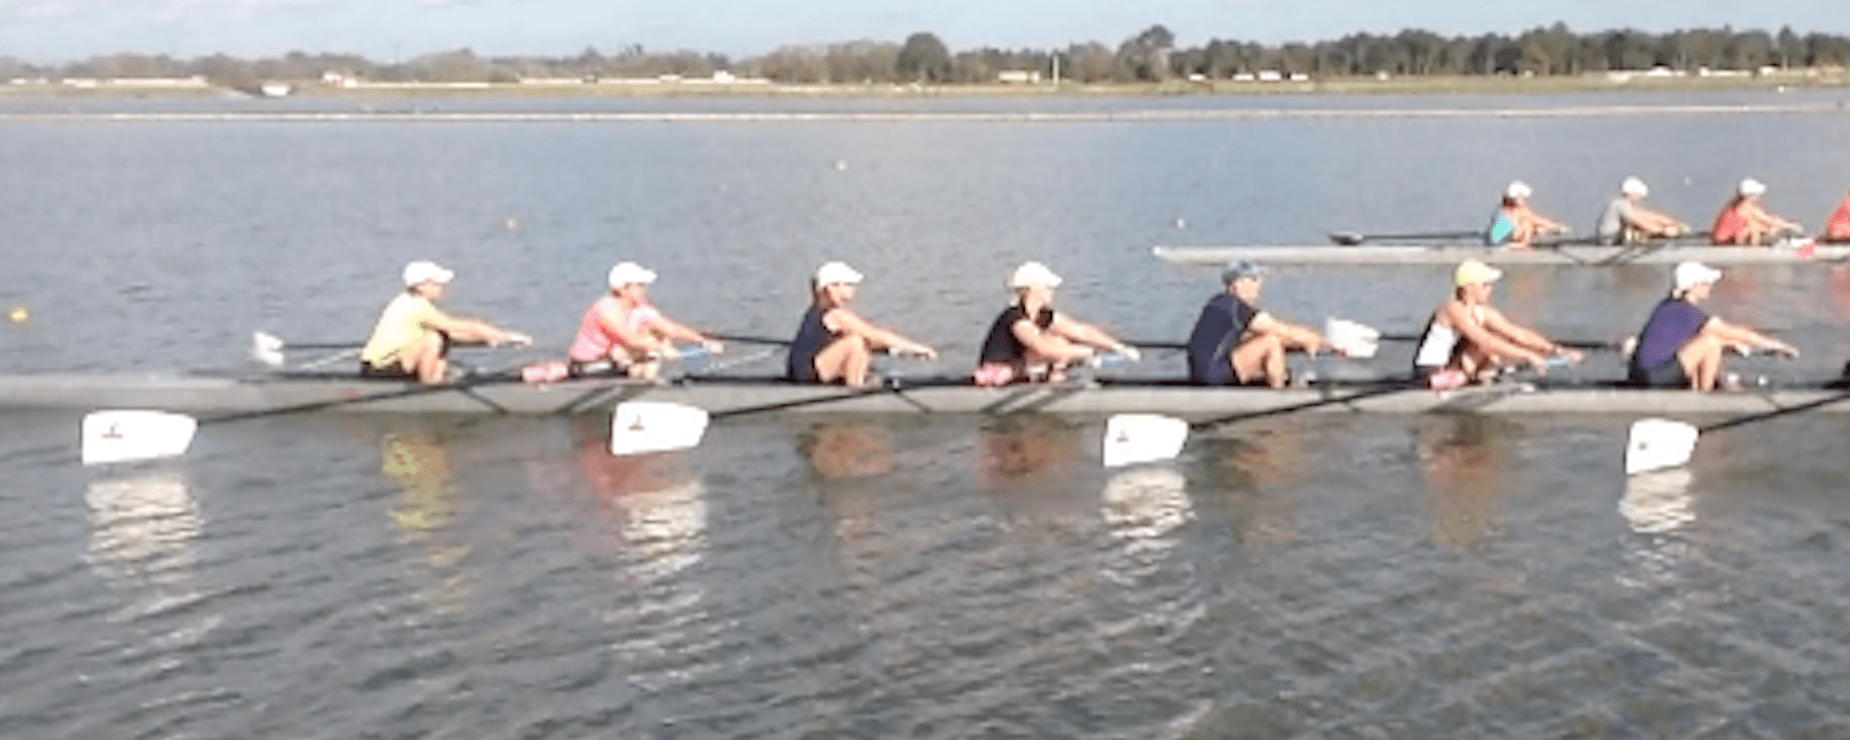 Getting the most out of rowing camps